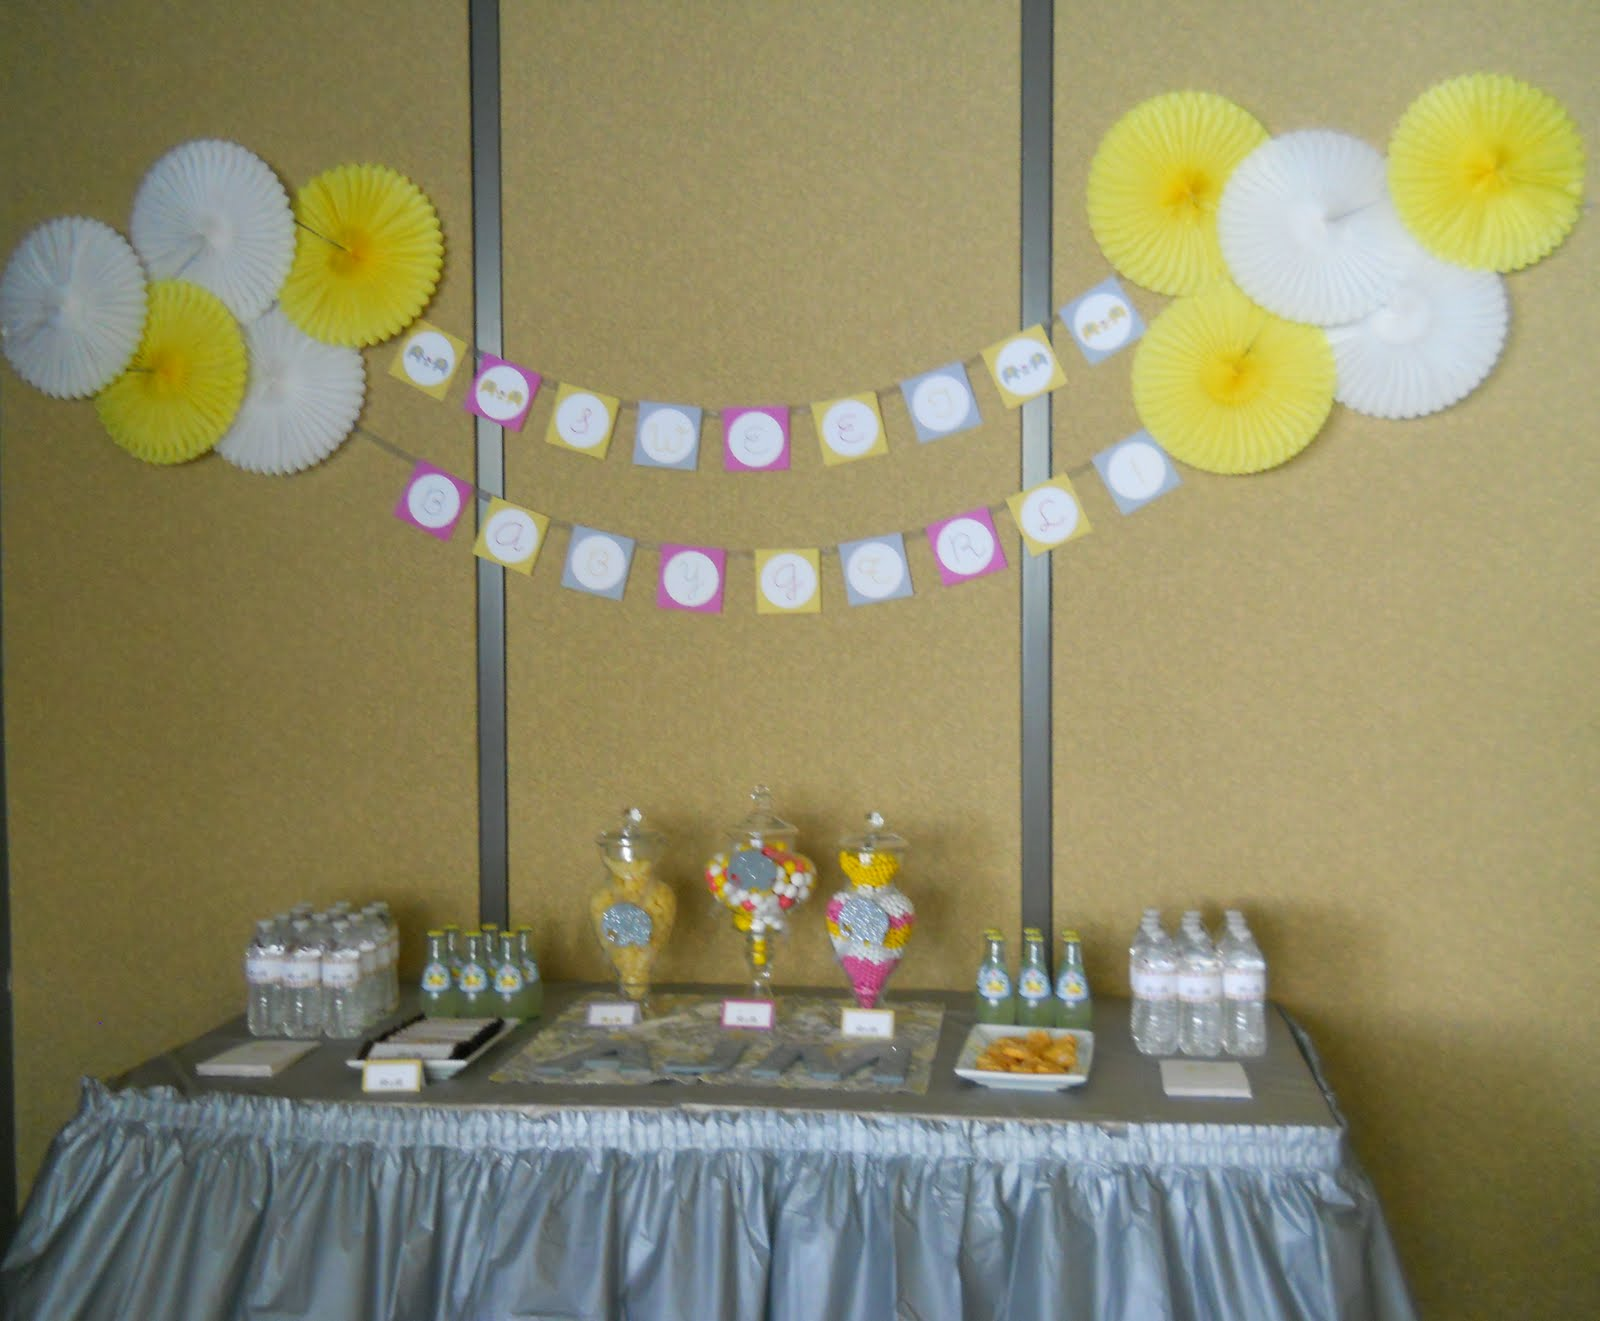 Baby shower decoration ideas interior home design for Baby shower party decoration ideas